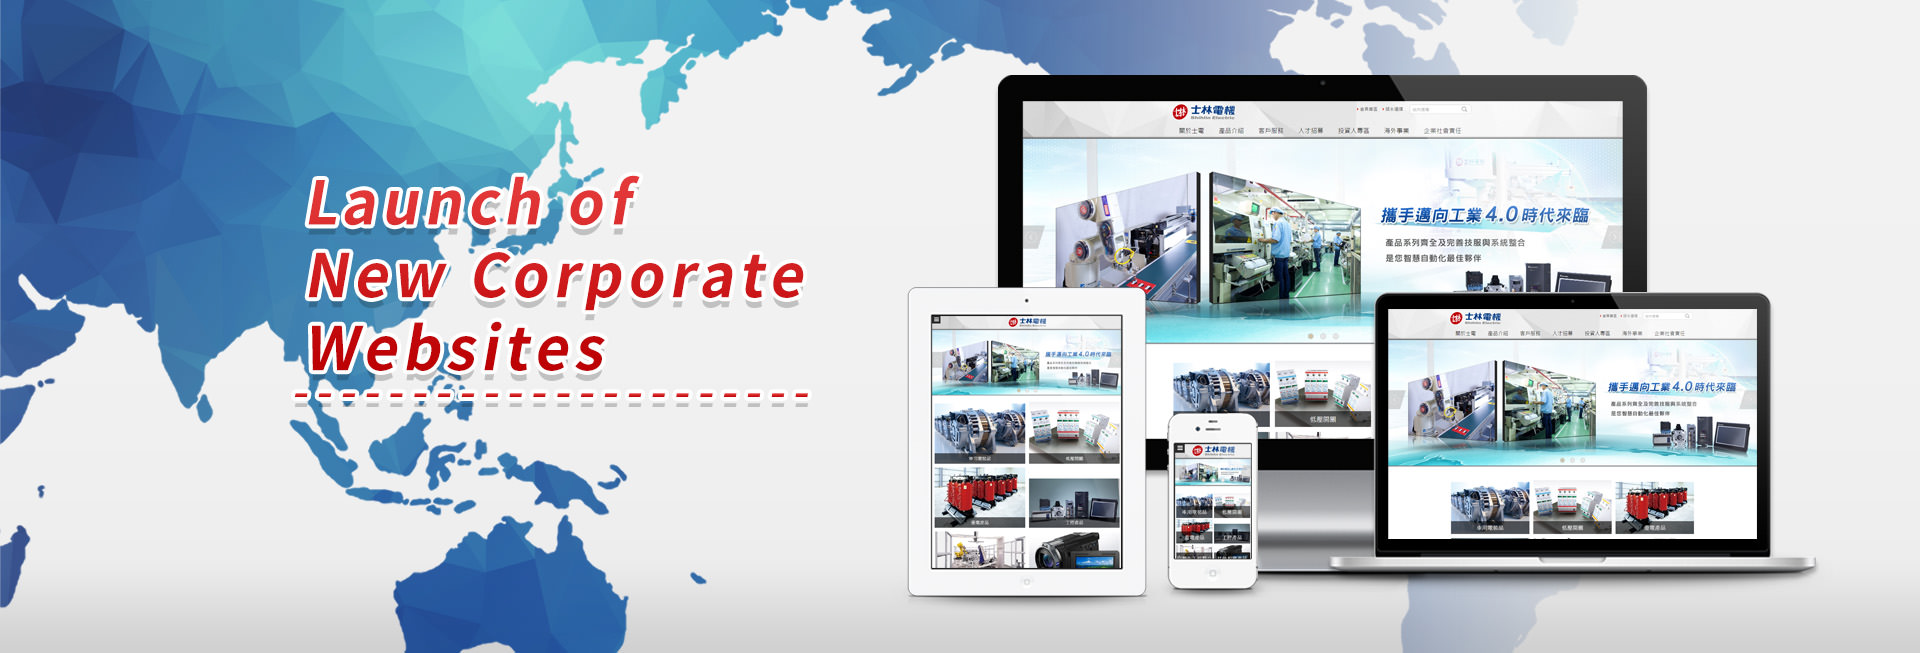 Launch of New Corporate Websites